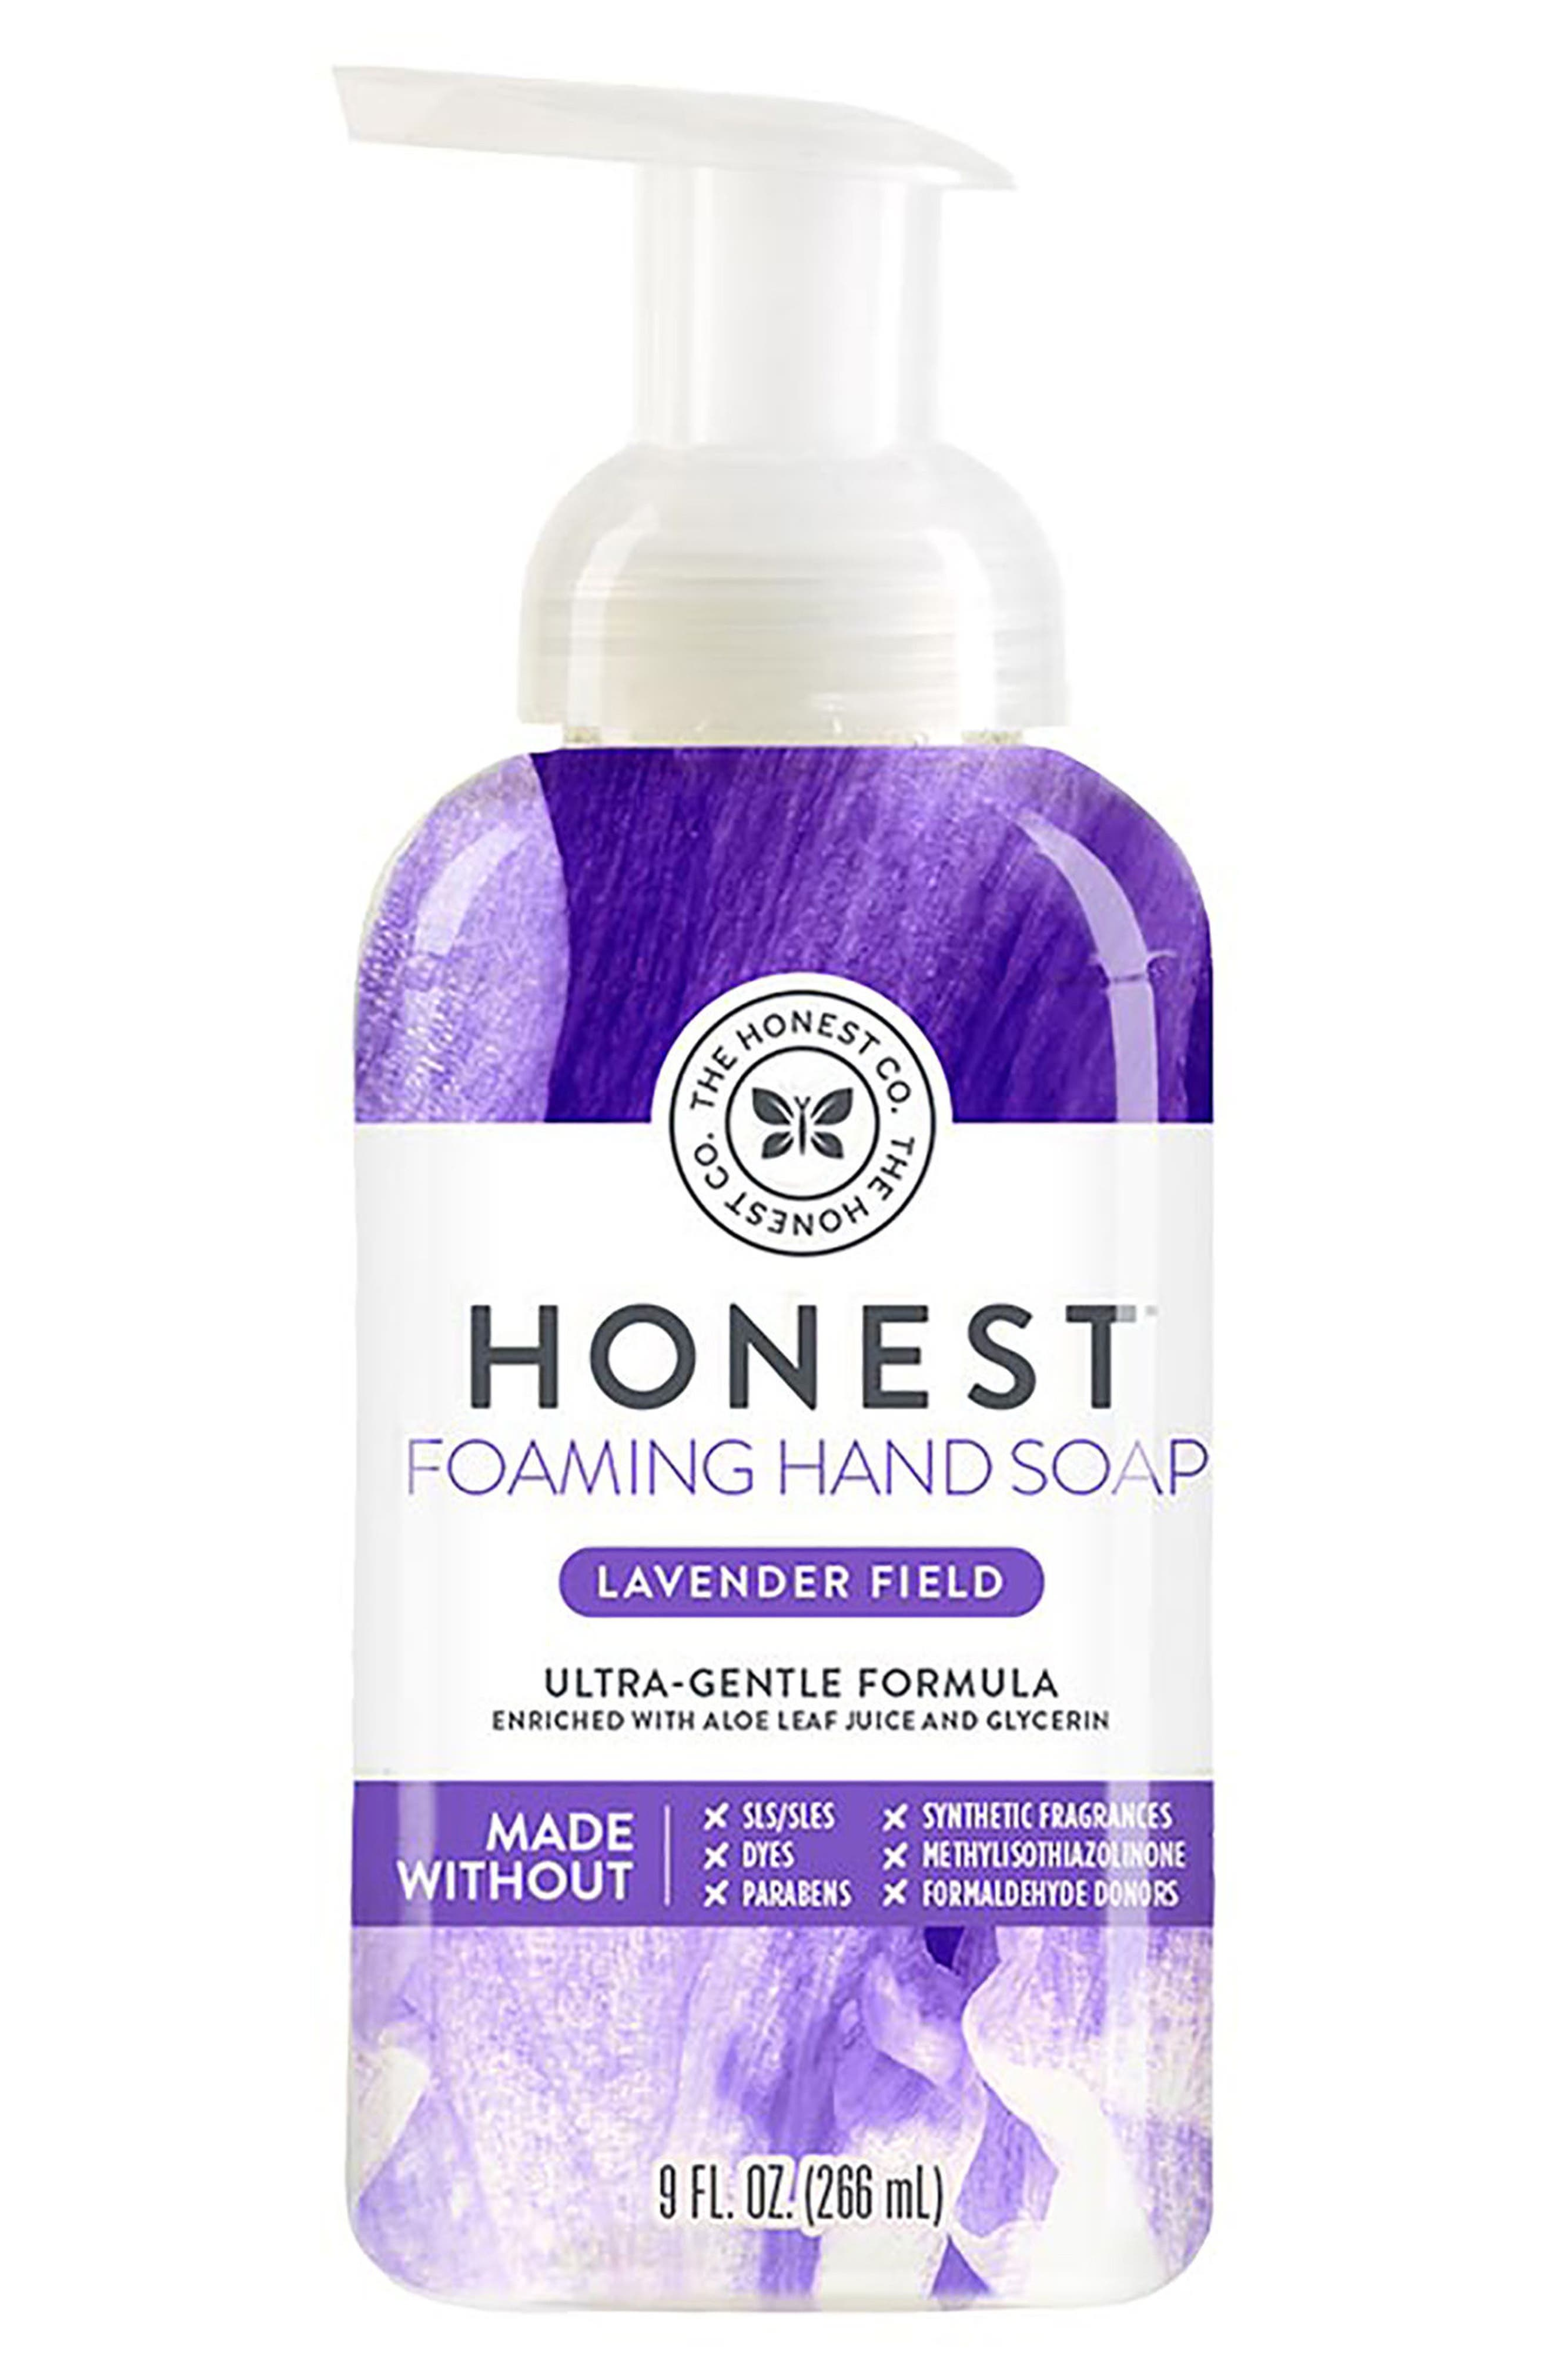 Alternate Image 1 Selected - The Honest Company Lavender Field Foaming Hand Soap